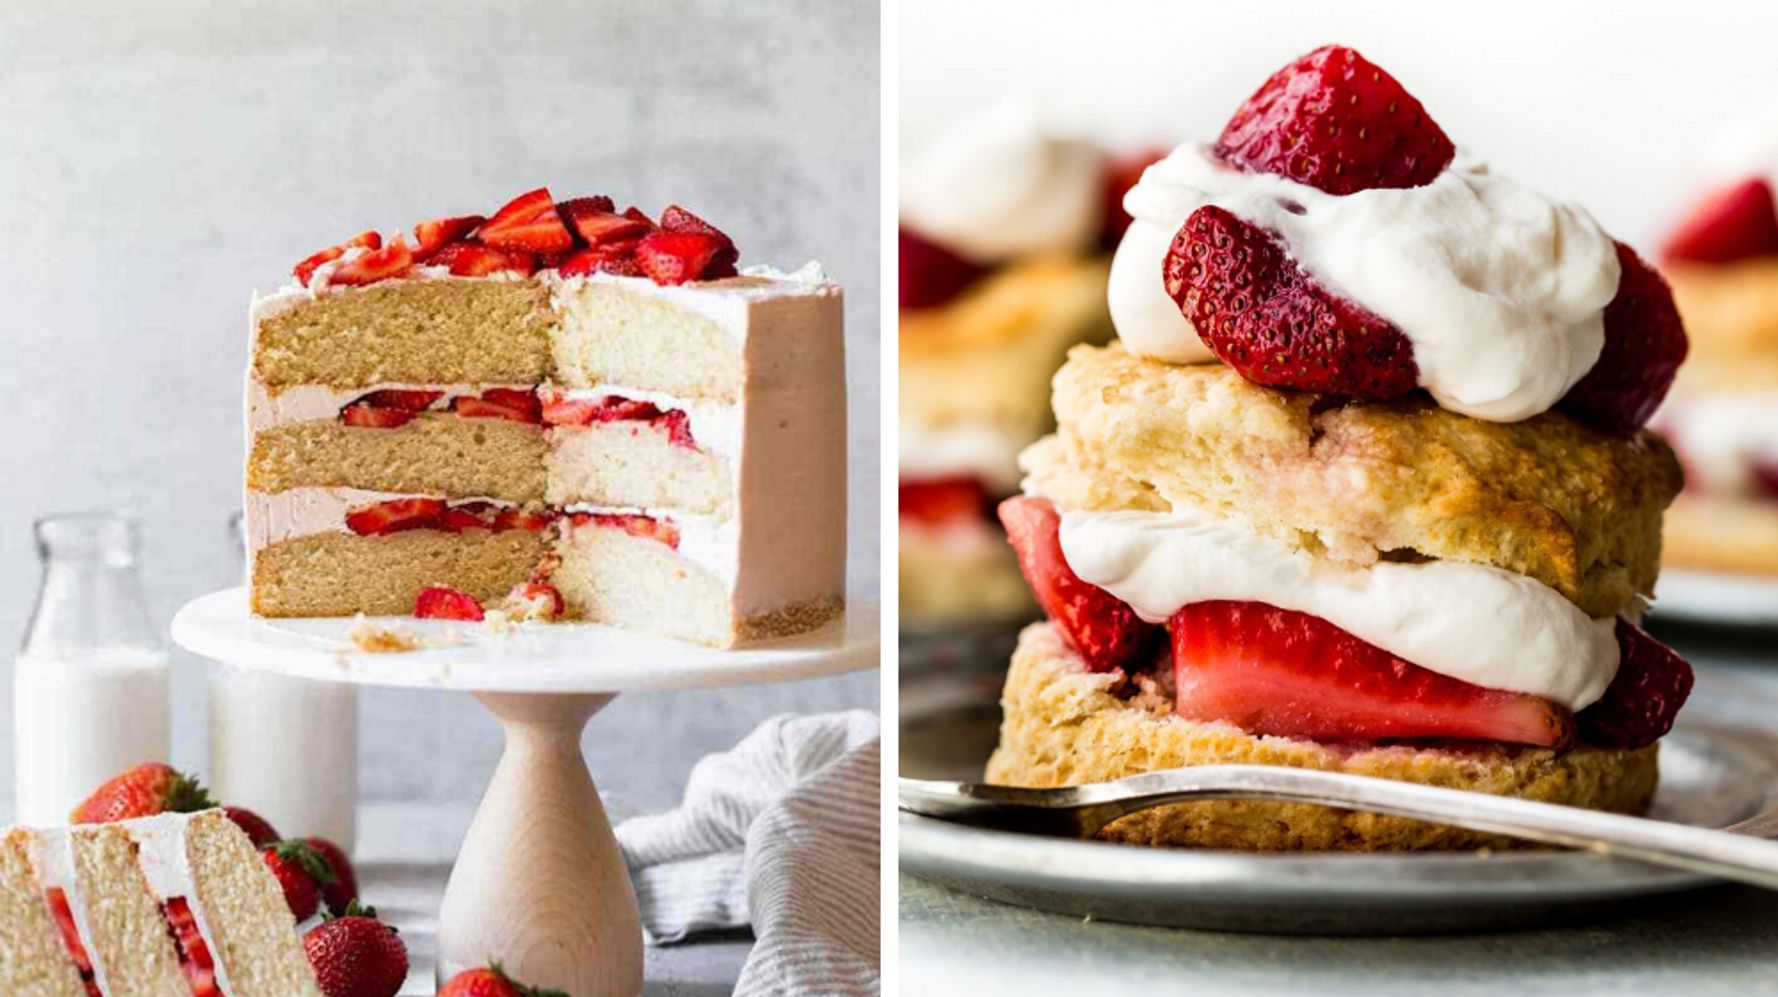 Strawberry Shortcake Recipes: 14 Ways To Make The Classic Dessert